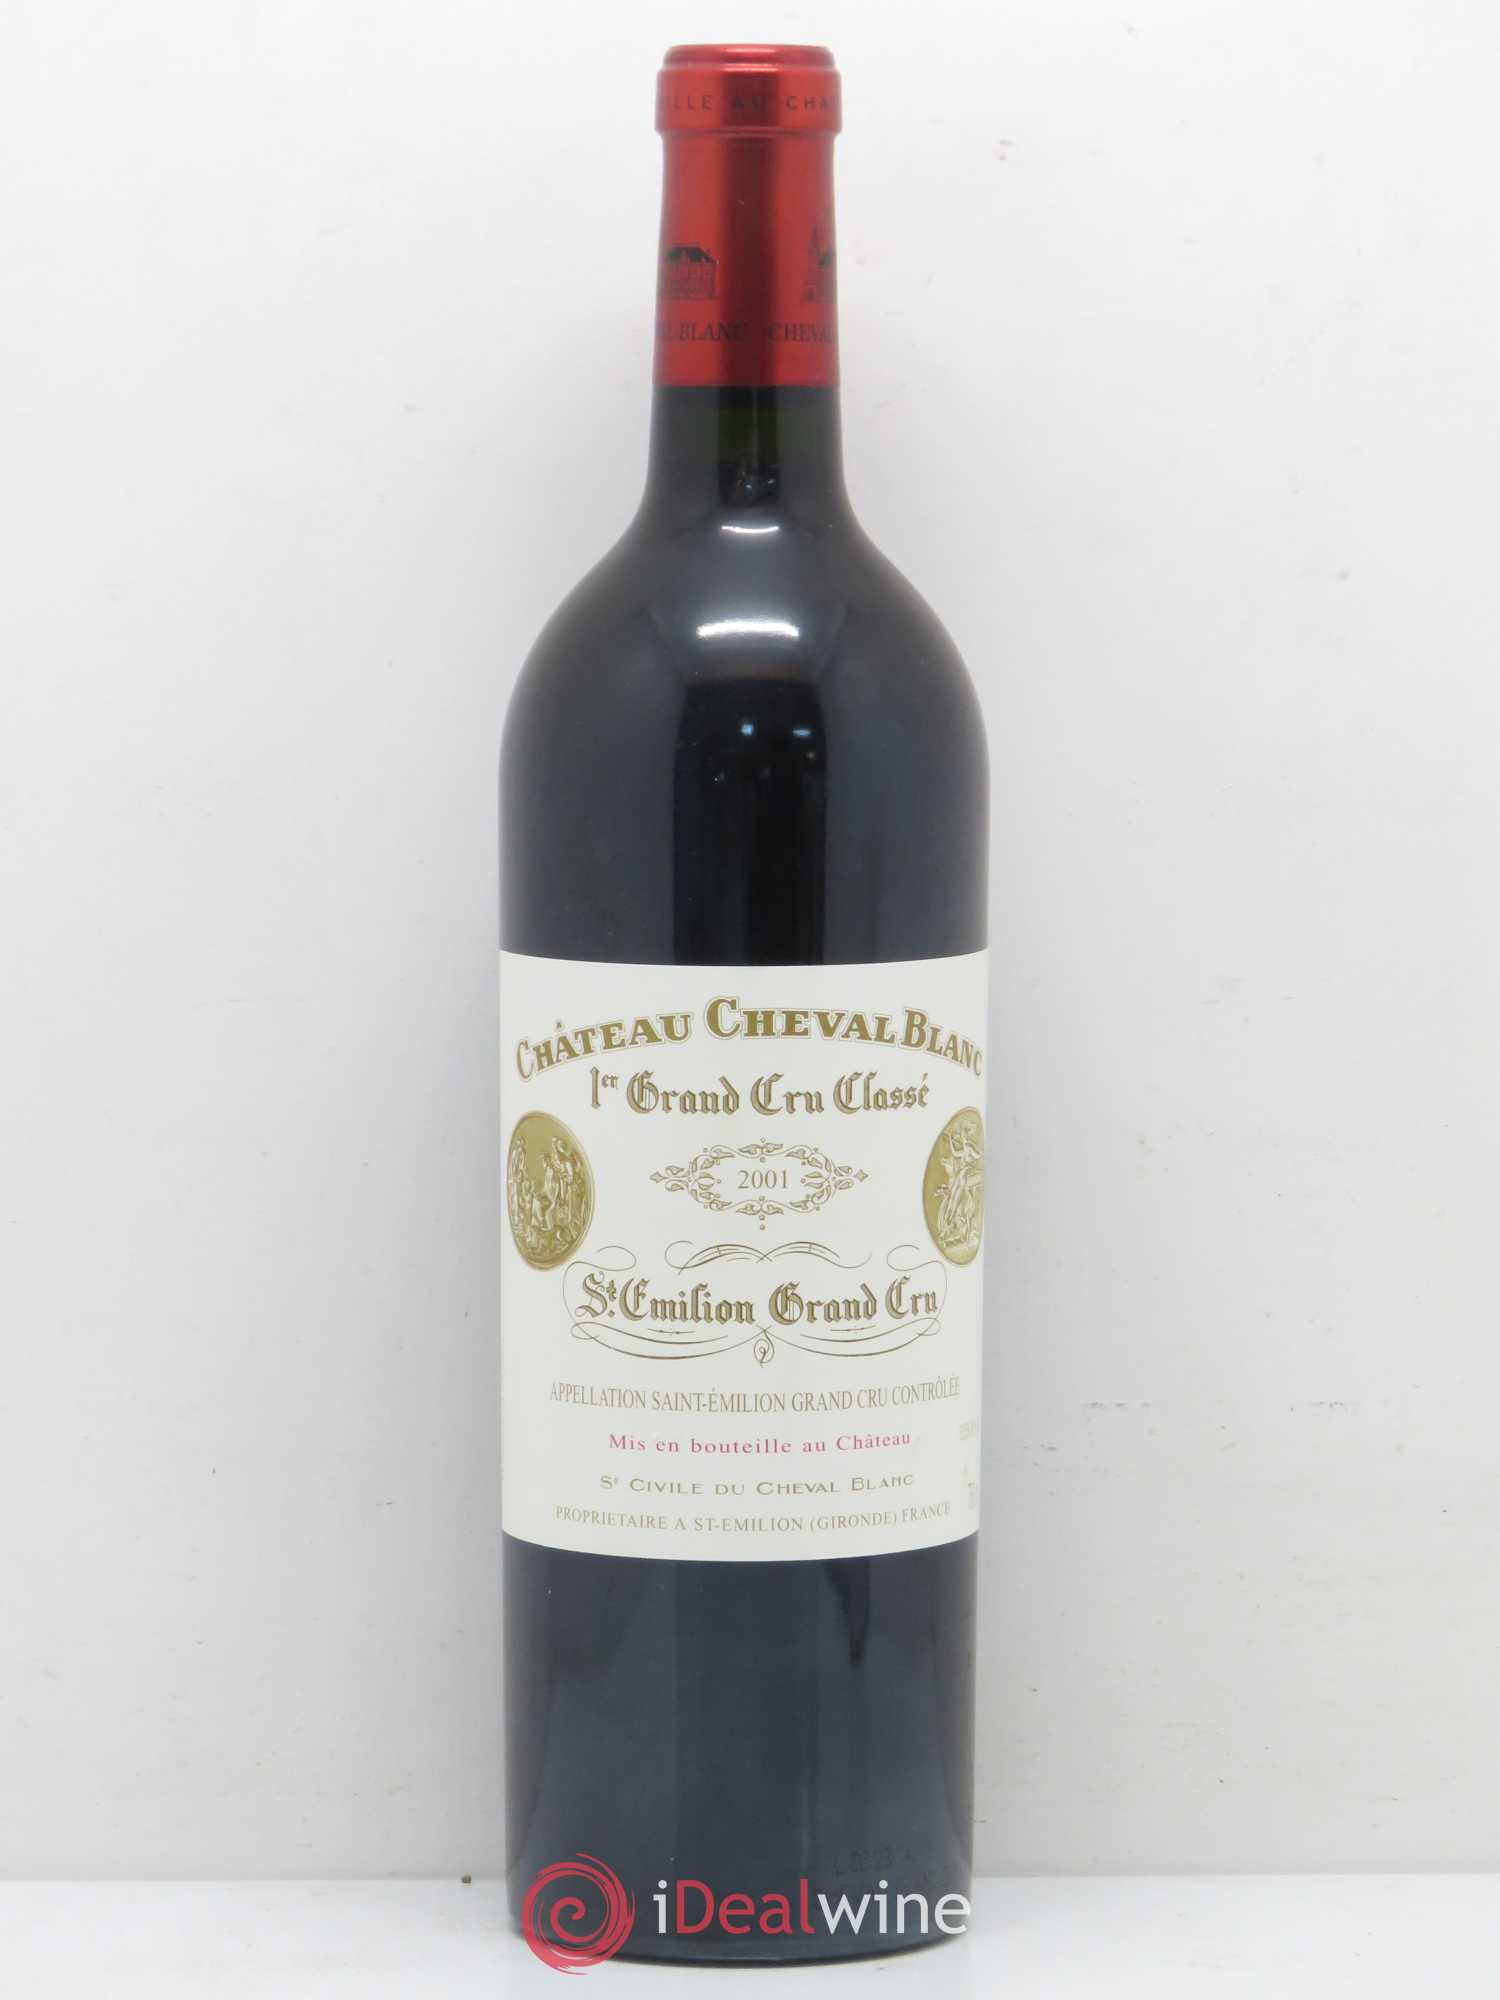 Château Cheval Blanc 1er Grand Cru Classé A  2001 - Lot of 1 Bottle